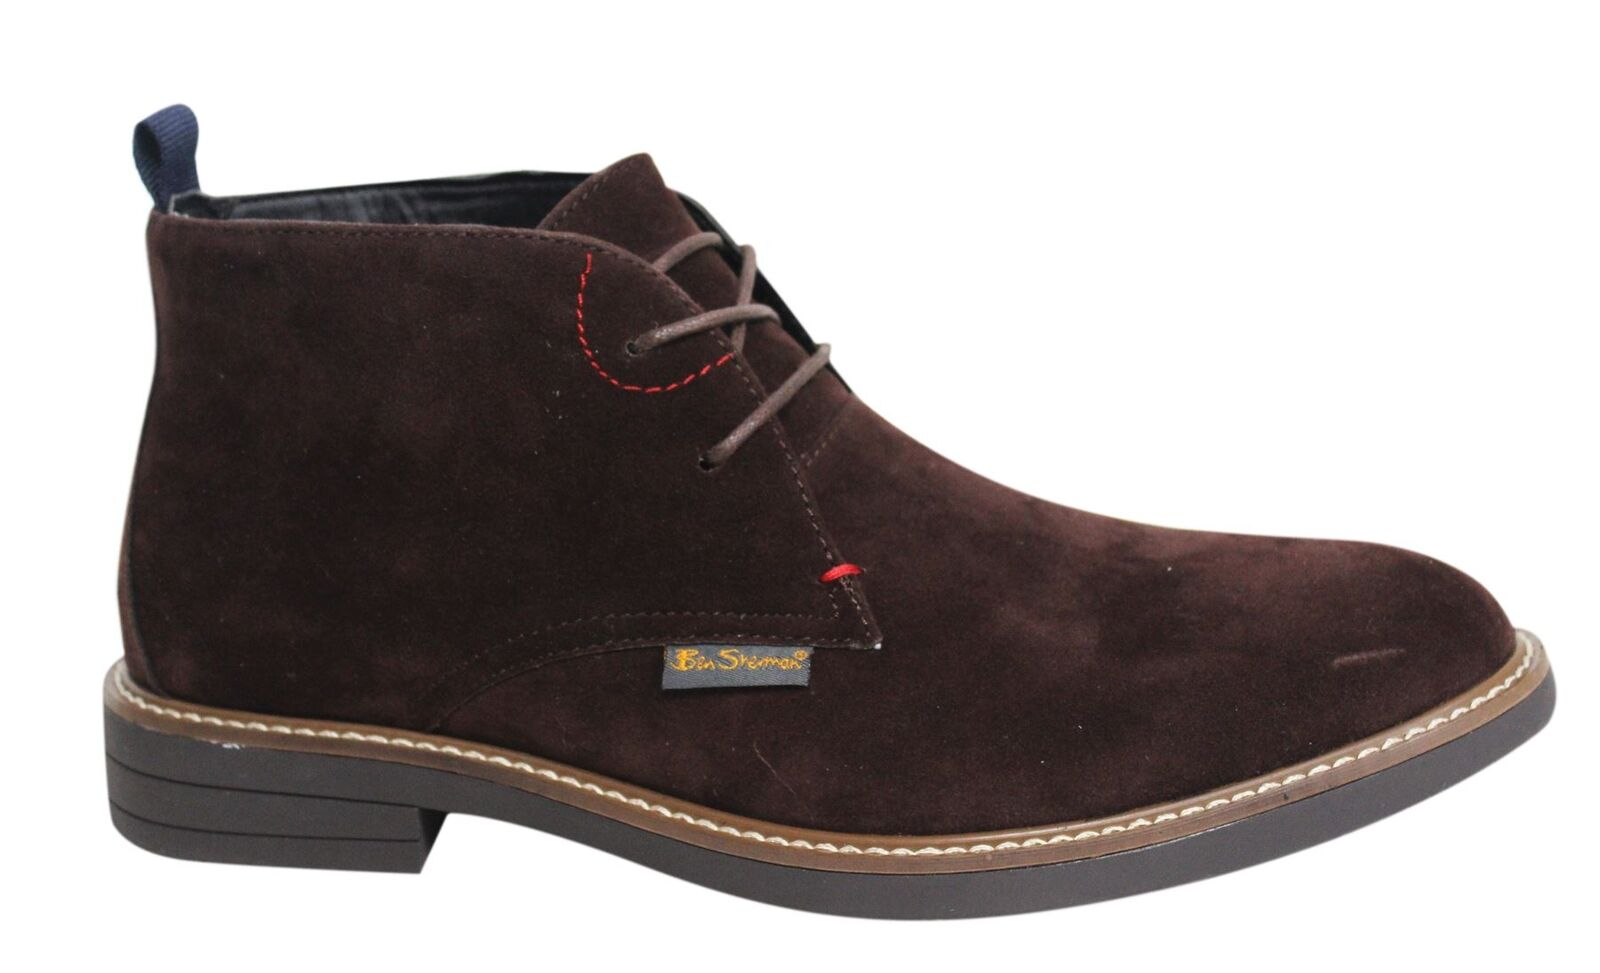 Ben Sherman Kington Lace Up Choc Suede Mens Chukka Boots BEN3163 016 U125